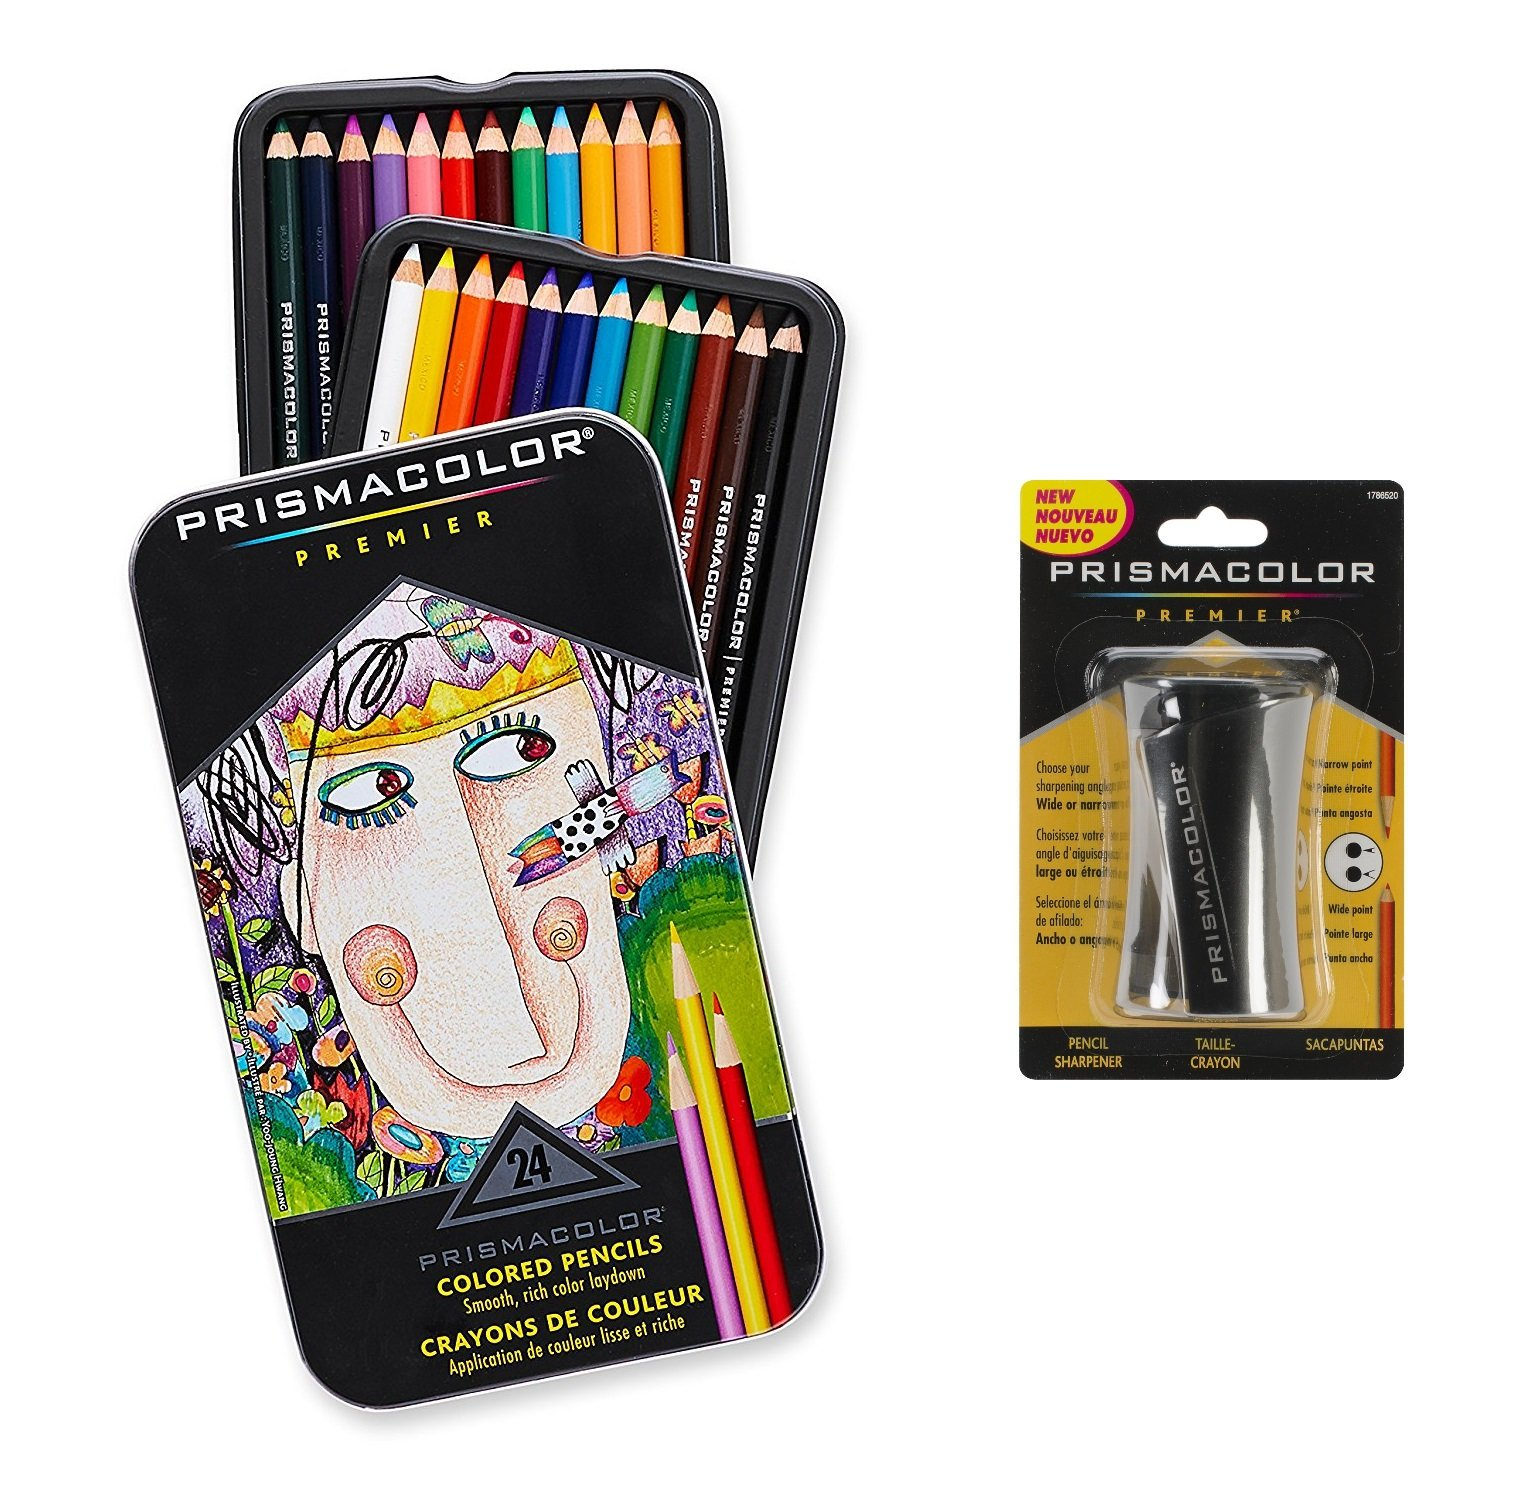 Prismacolor Premier Colored Pencils, Colored Pencils and Sharpener jAOHgg, 4Pack (24 Count)